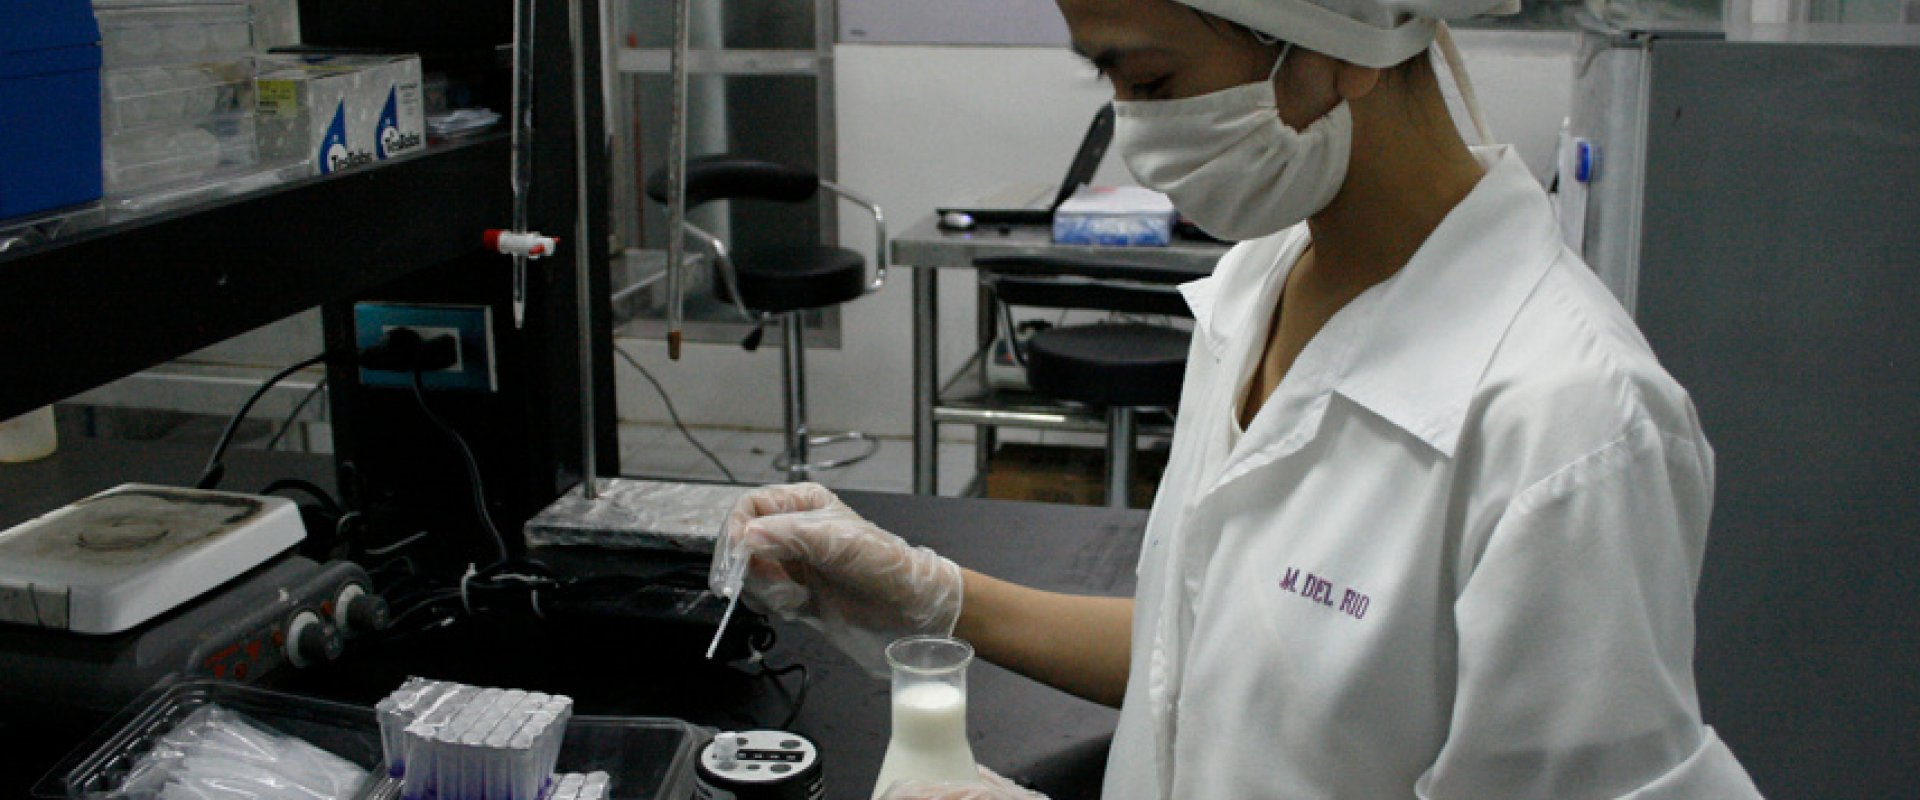 High quality control and standardization procedures